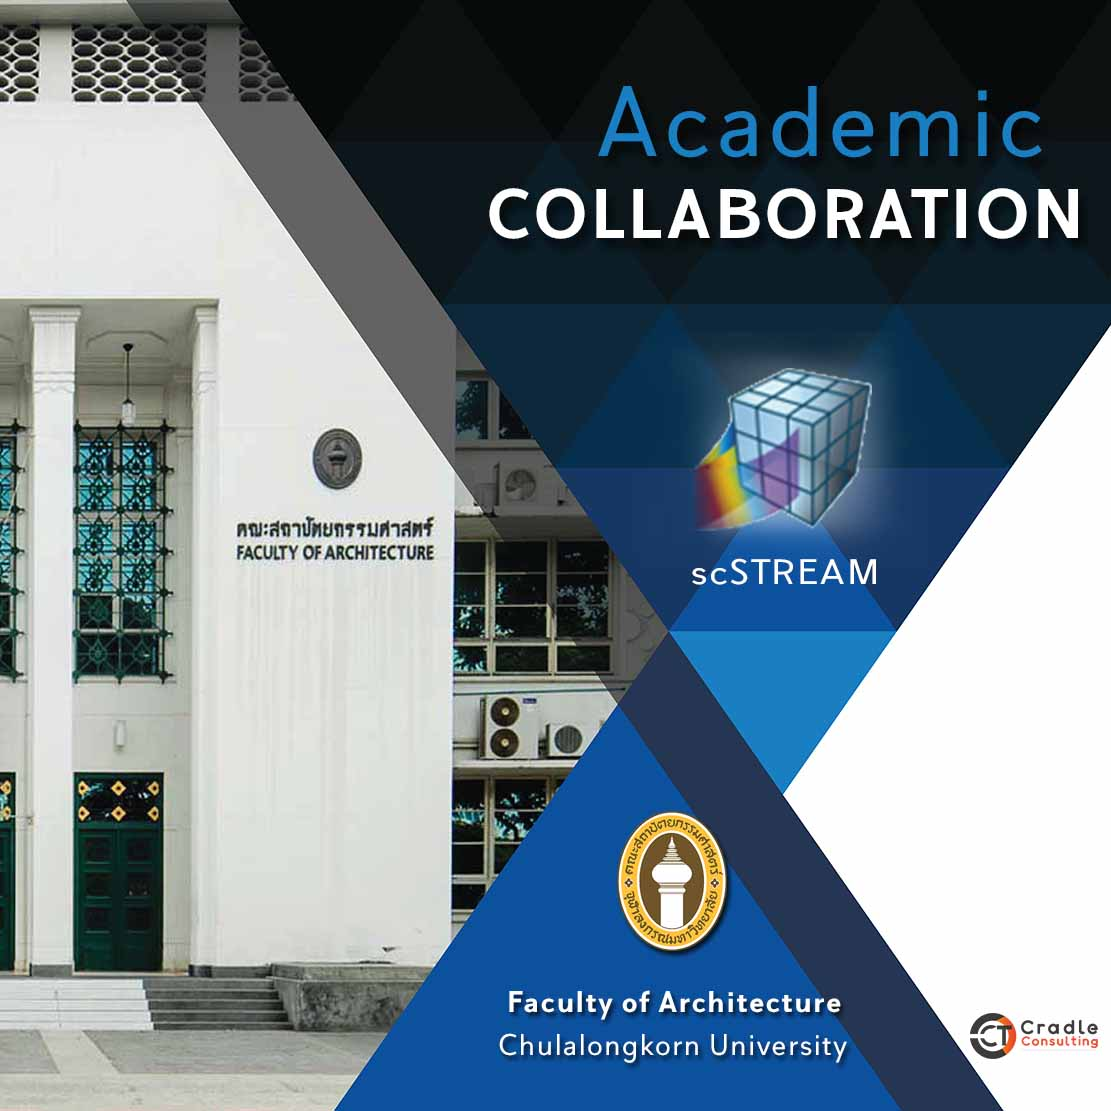 Academic Collaboration - Faculty of Architecture, Chulalongkorn University